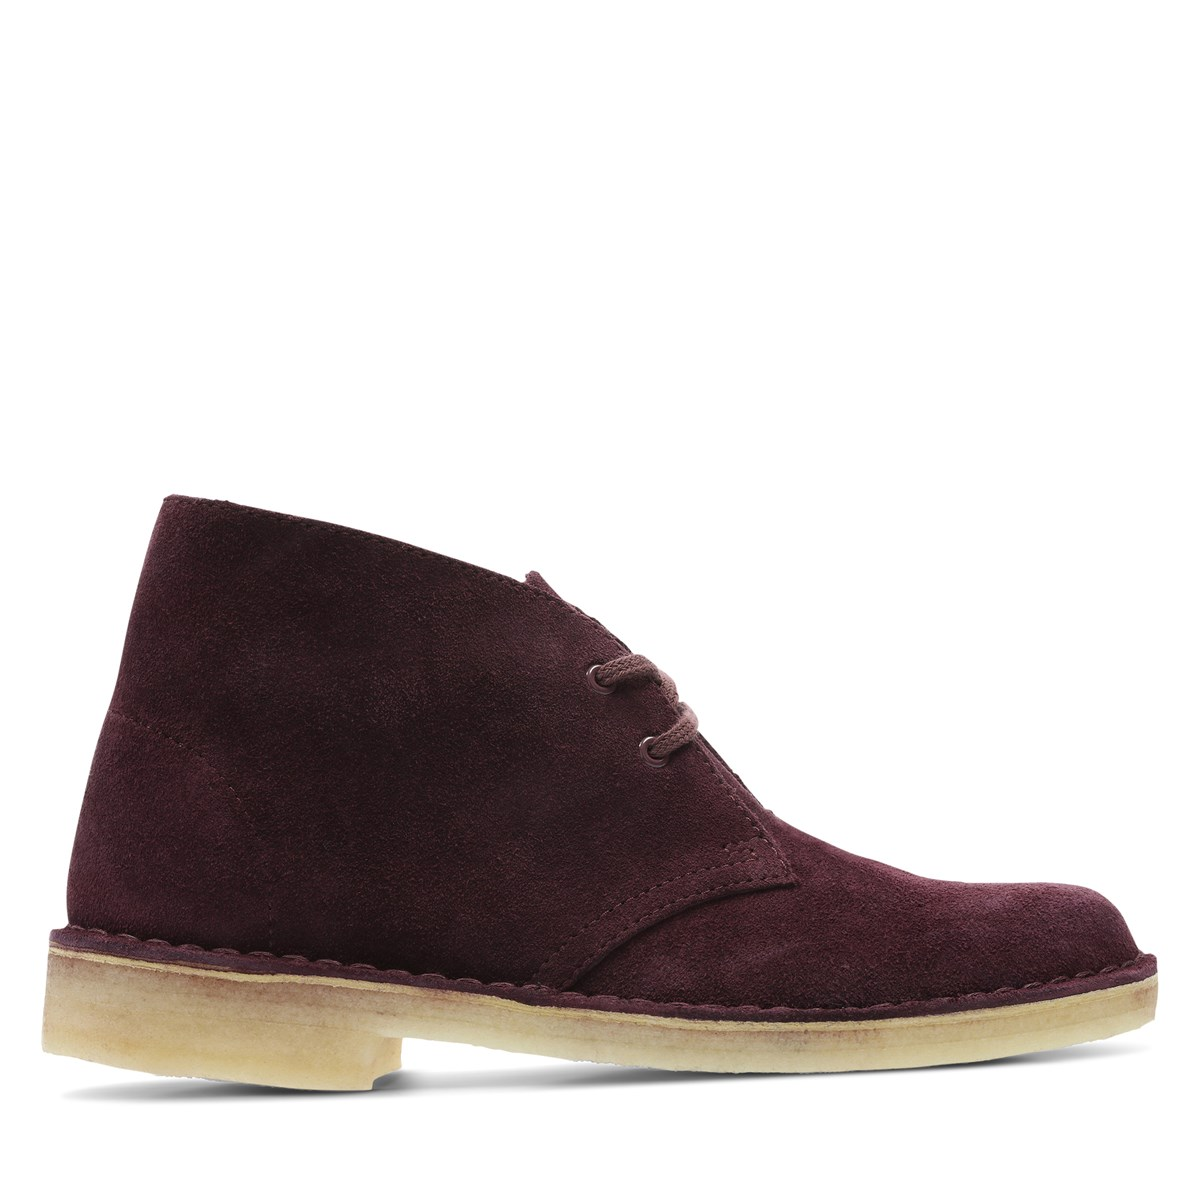 Women's Desert Boots in Bordeaux